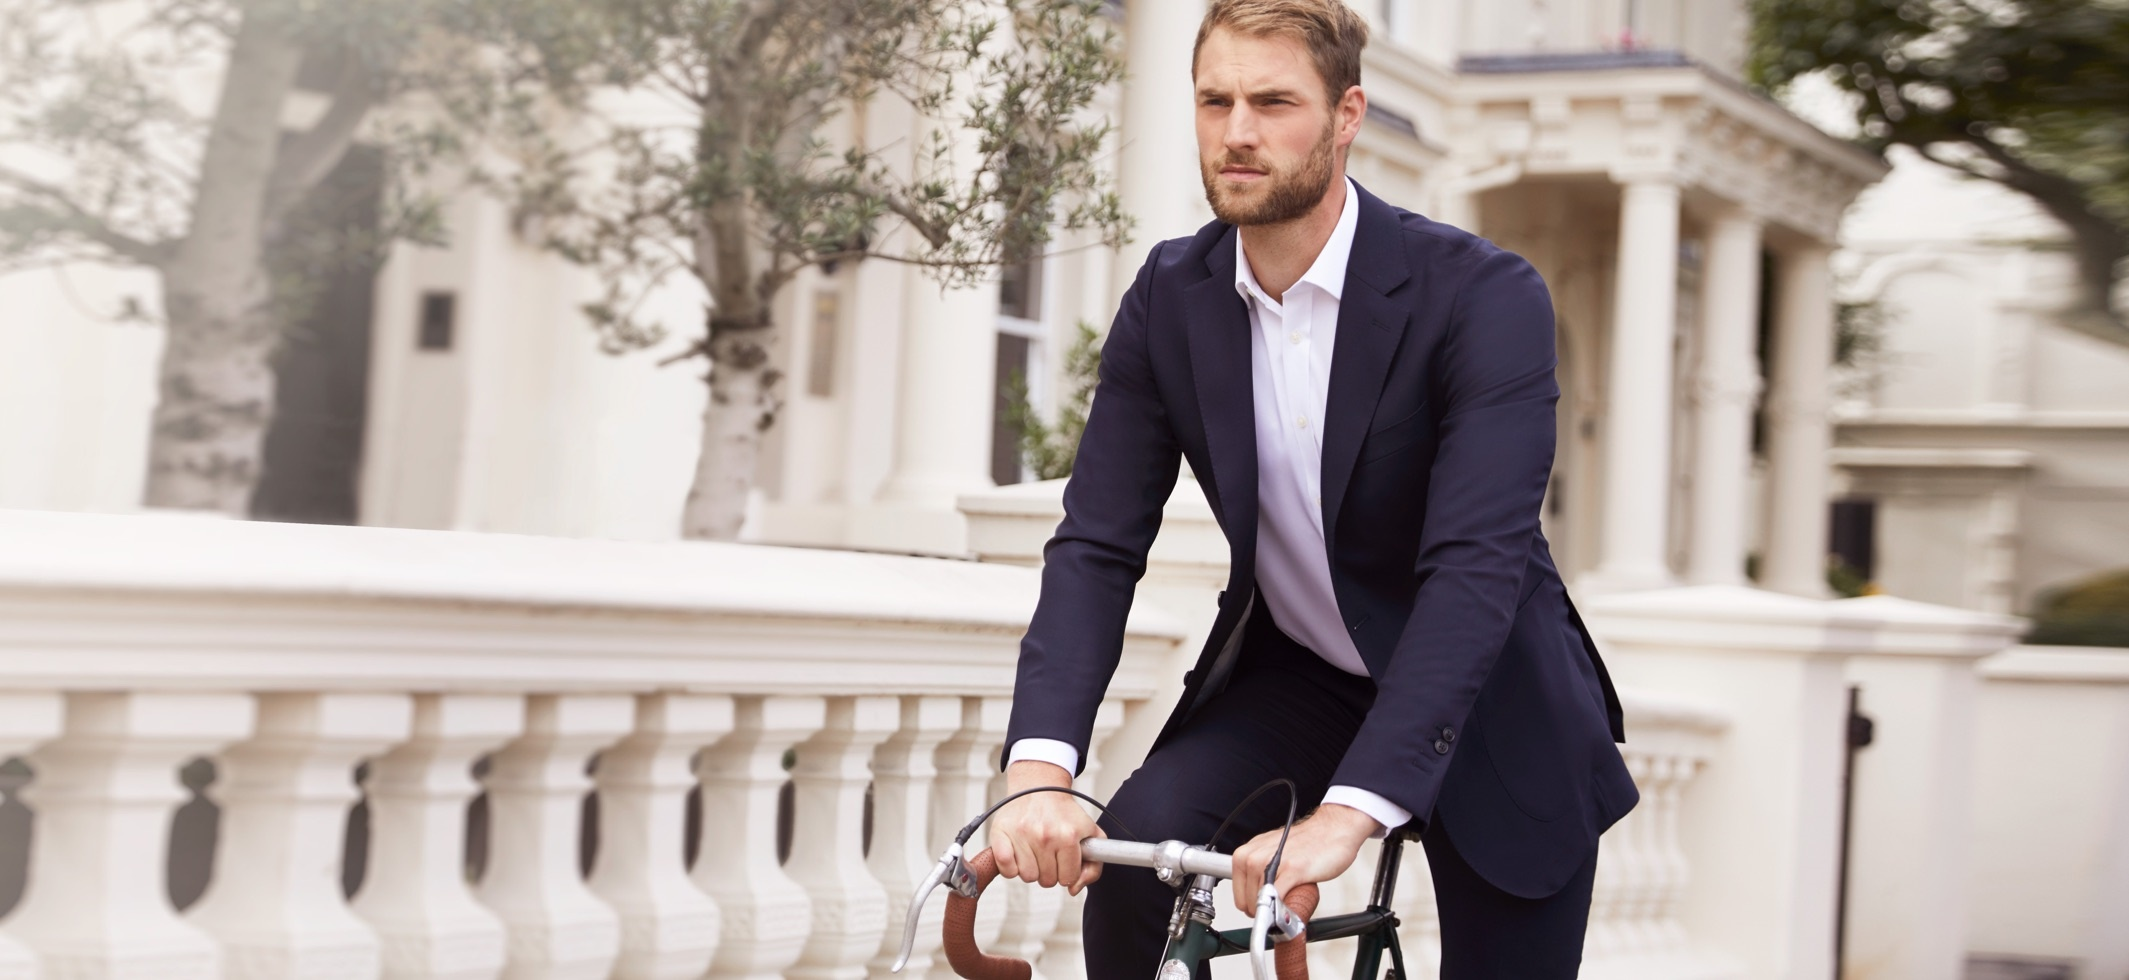 Men Bike in a Suits | Hawes & Curtis